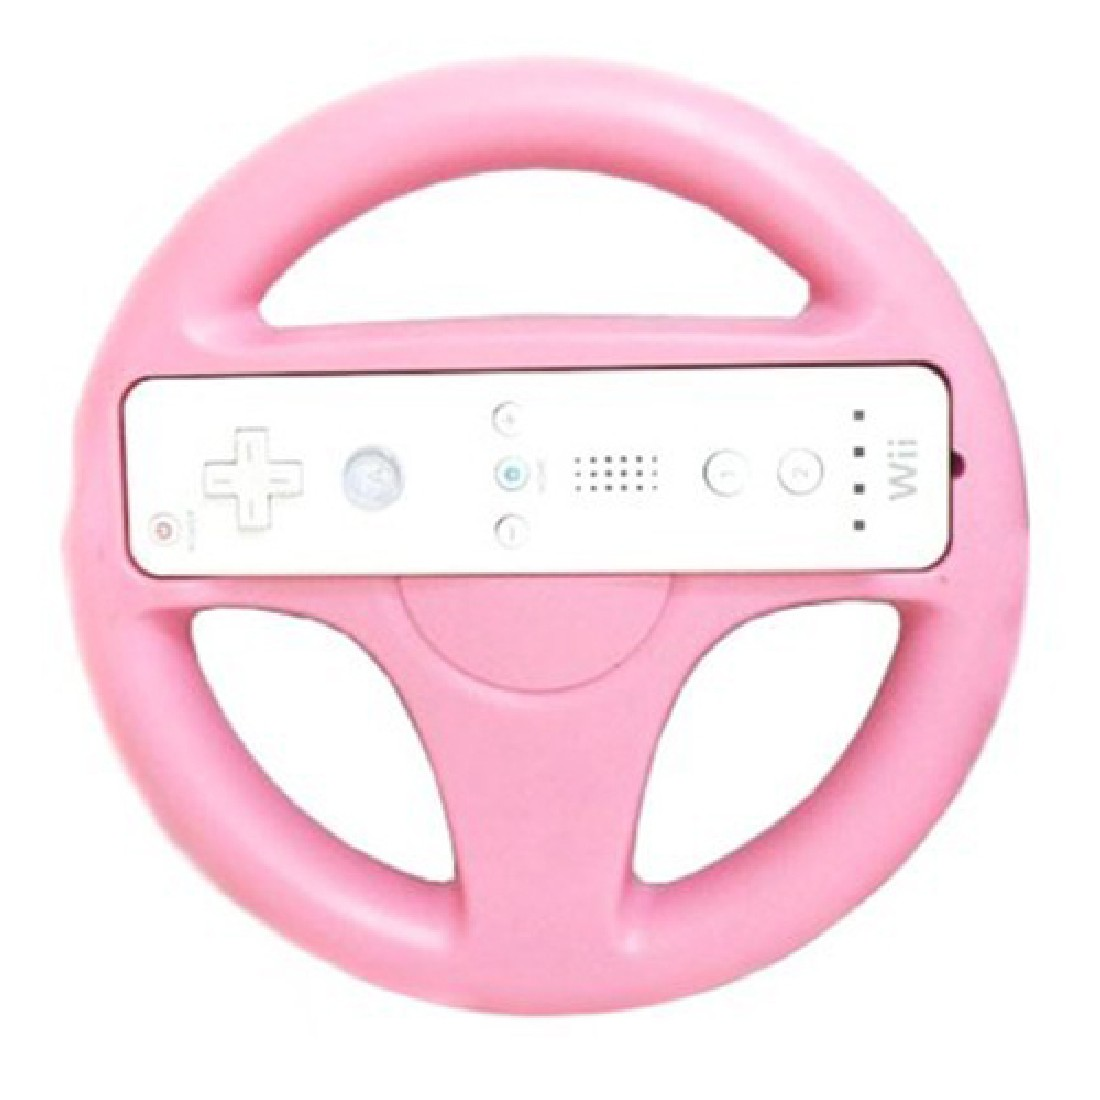 Hot Sale New Fashion Steering Wheel Other Accessories Game Accessories For Nintendo Wii Remote Controller Racing Games Pink